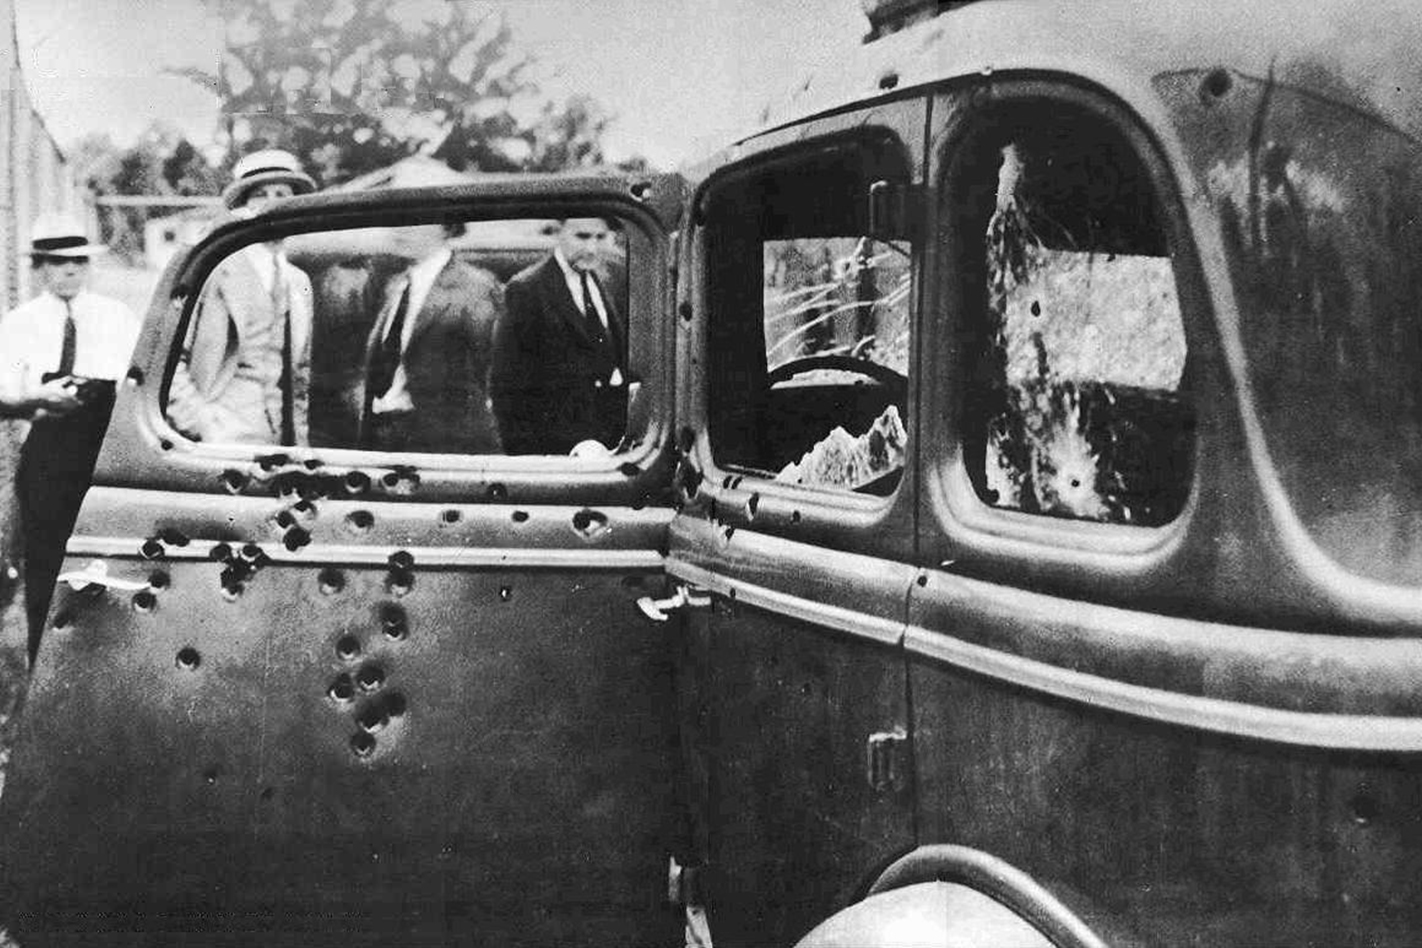 Bonnie and Clyde's Ford V-8